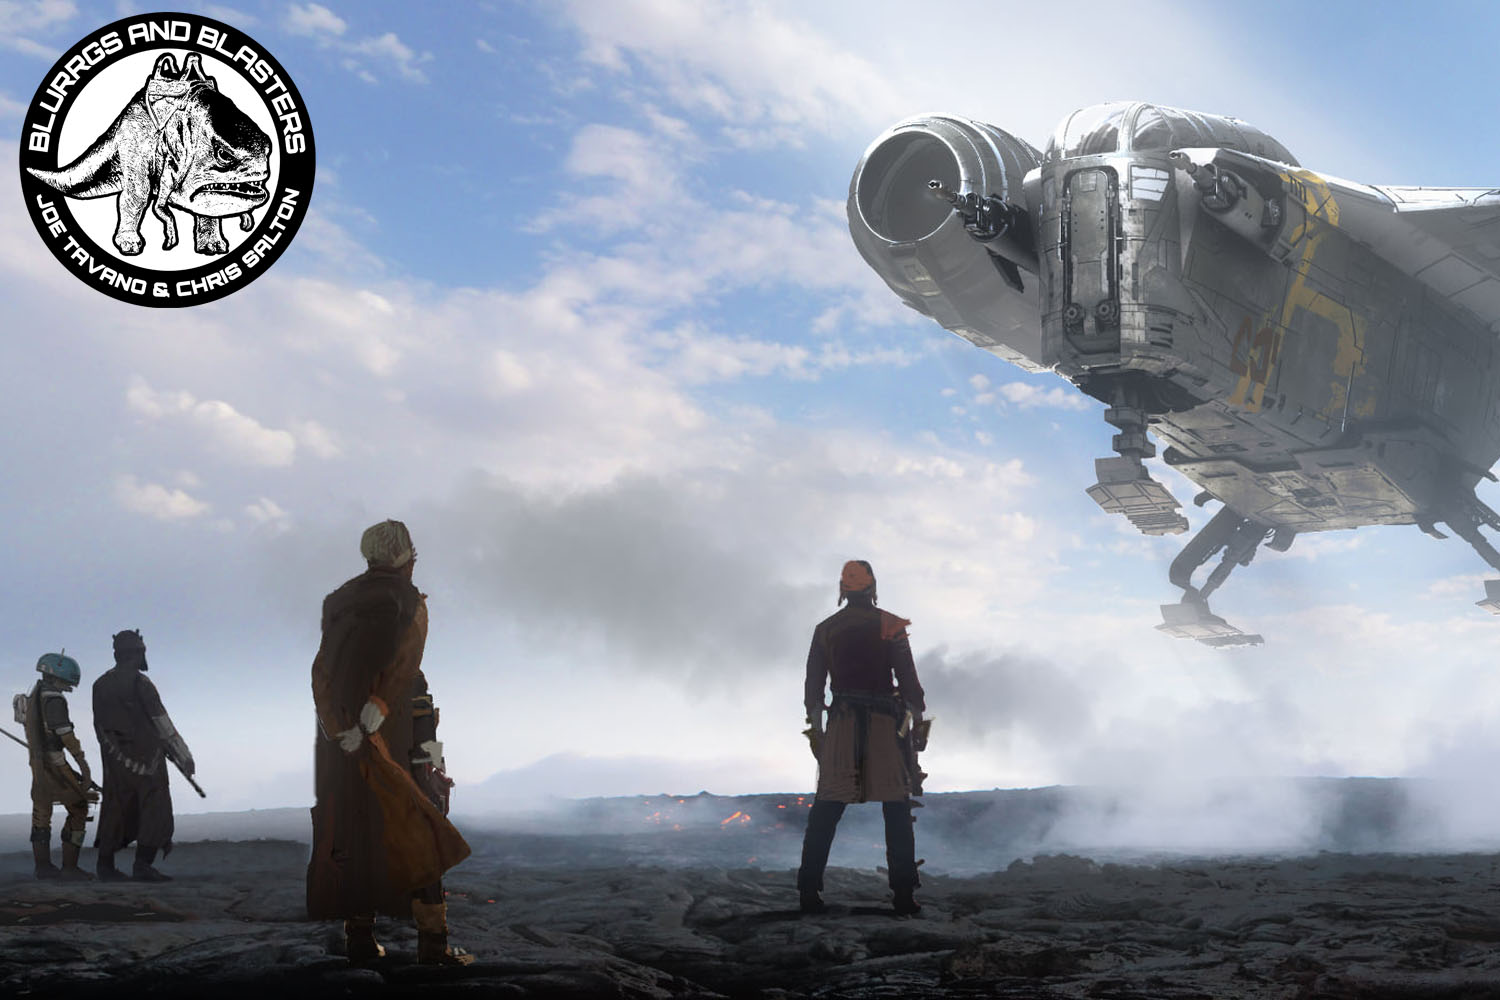 Blurrgs and Blasters: The Mandalorian, Chapter 7: The Reckoning (Brews and Blasters 241)